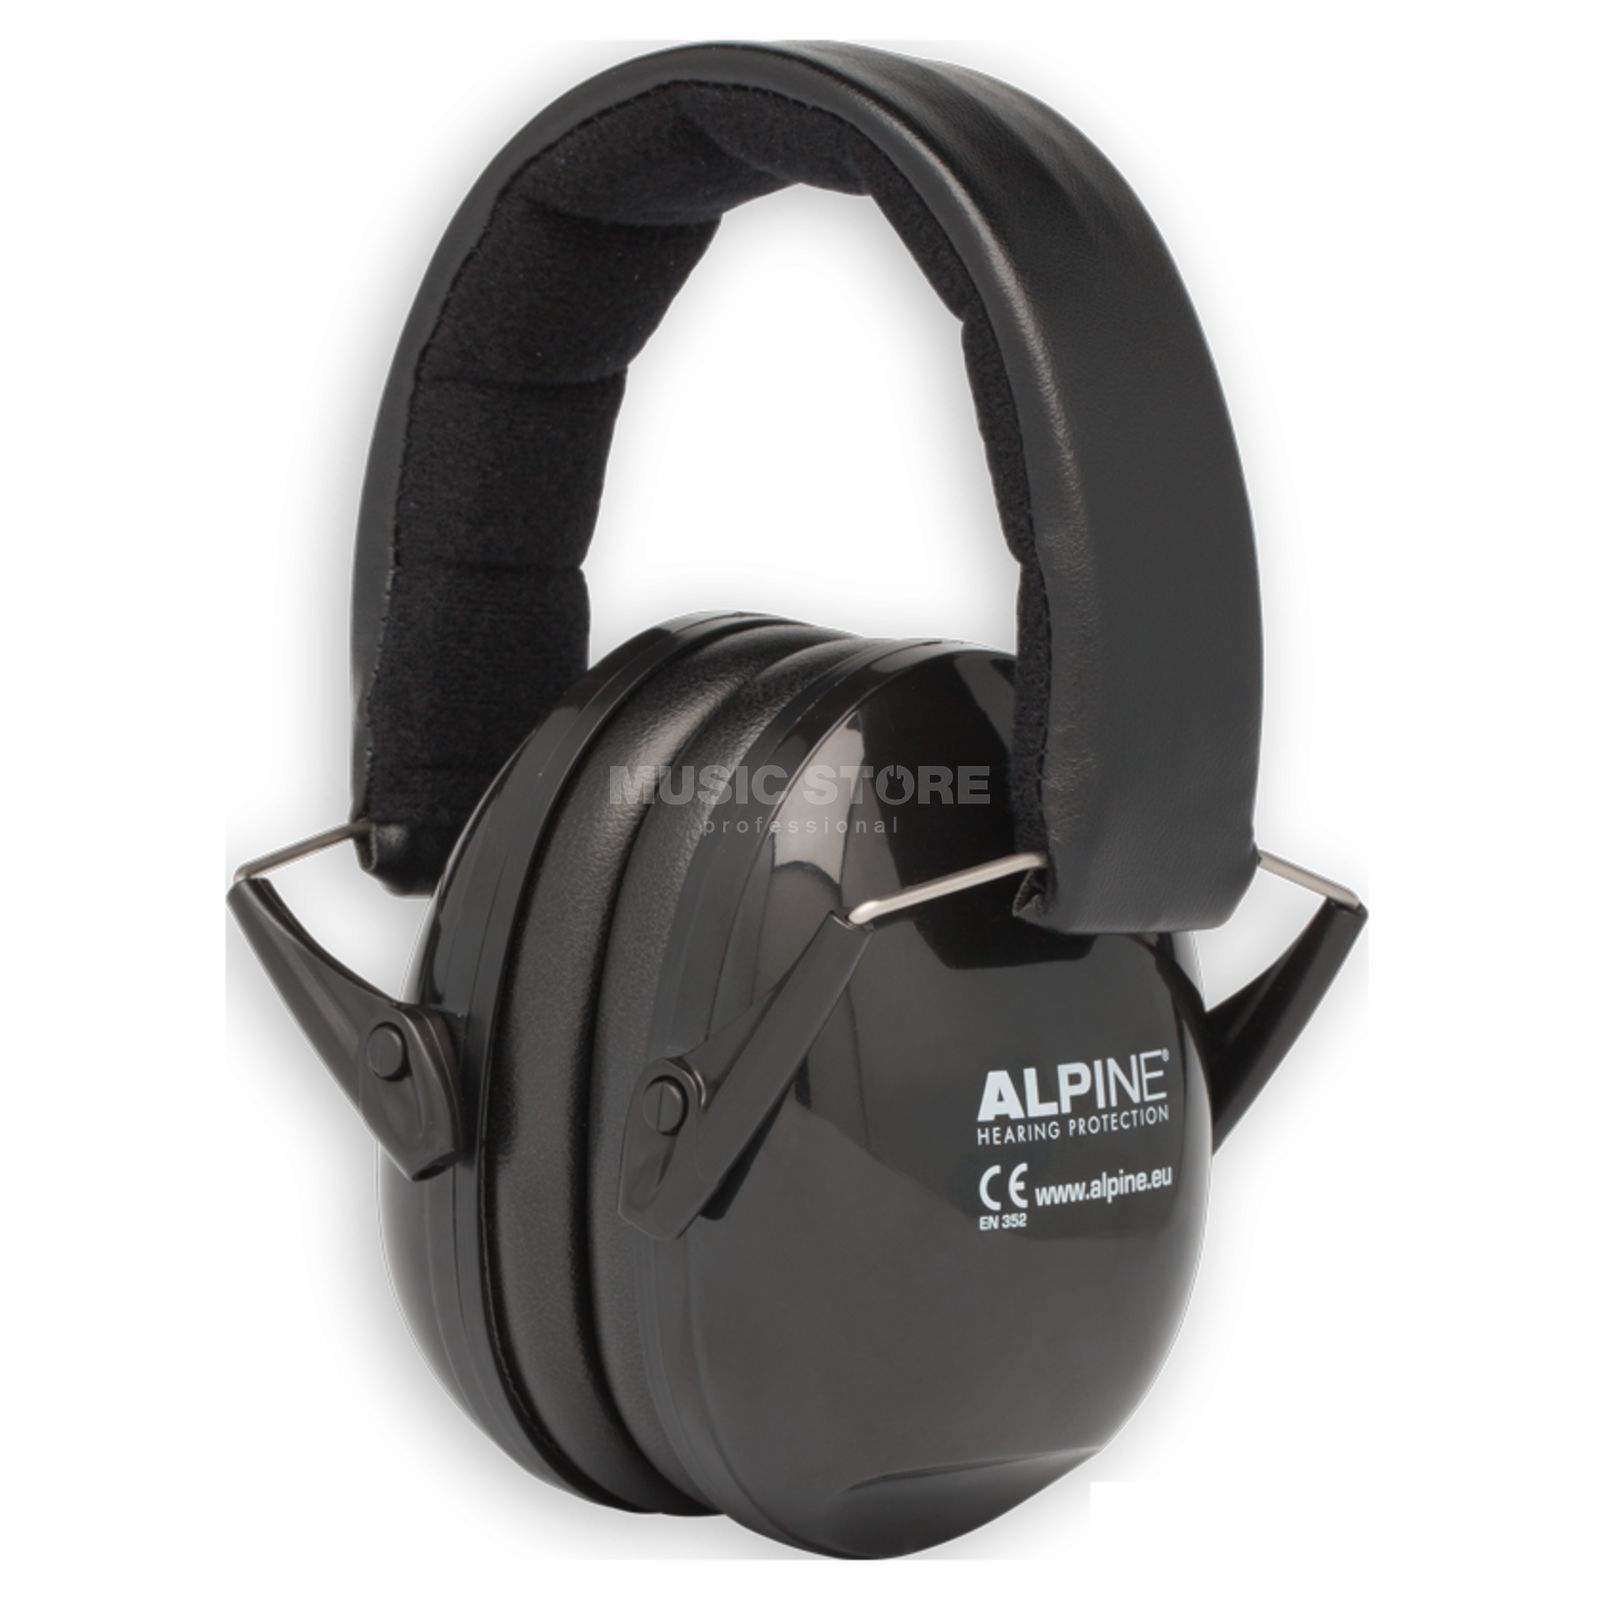 Alpine Muffy Music Hearing Protection Black Product Image